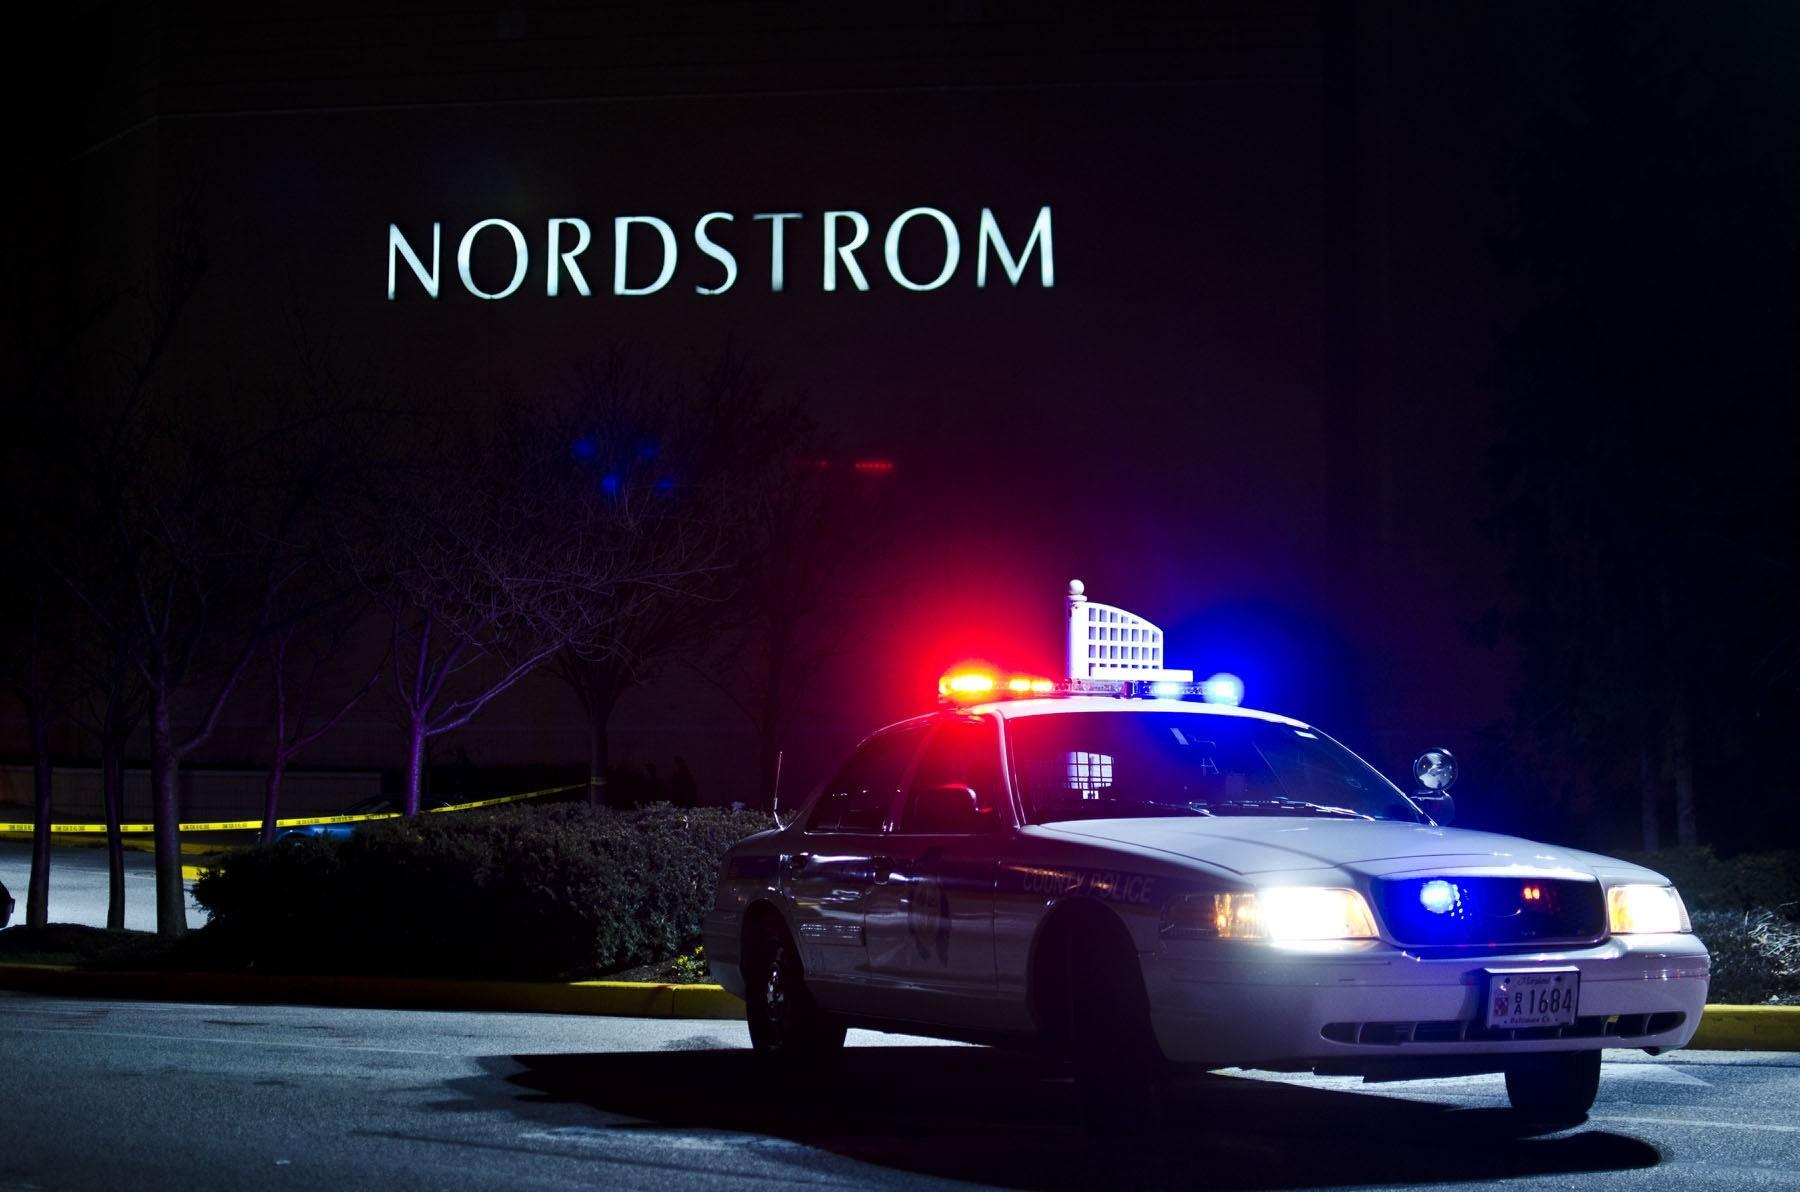 A Baltimore County Police cruiser blocks the entrance to Nordstrom at Towson Town Center, Monday, Dec. 19. after a 19-year-old Baltimore man was fatally shot just after 6 p.m. outside the service entrance of Nordstrom.